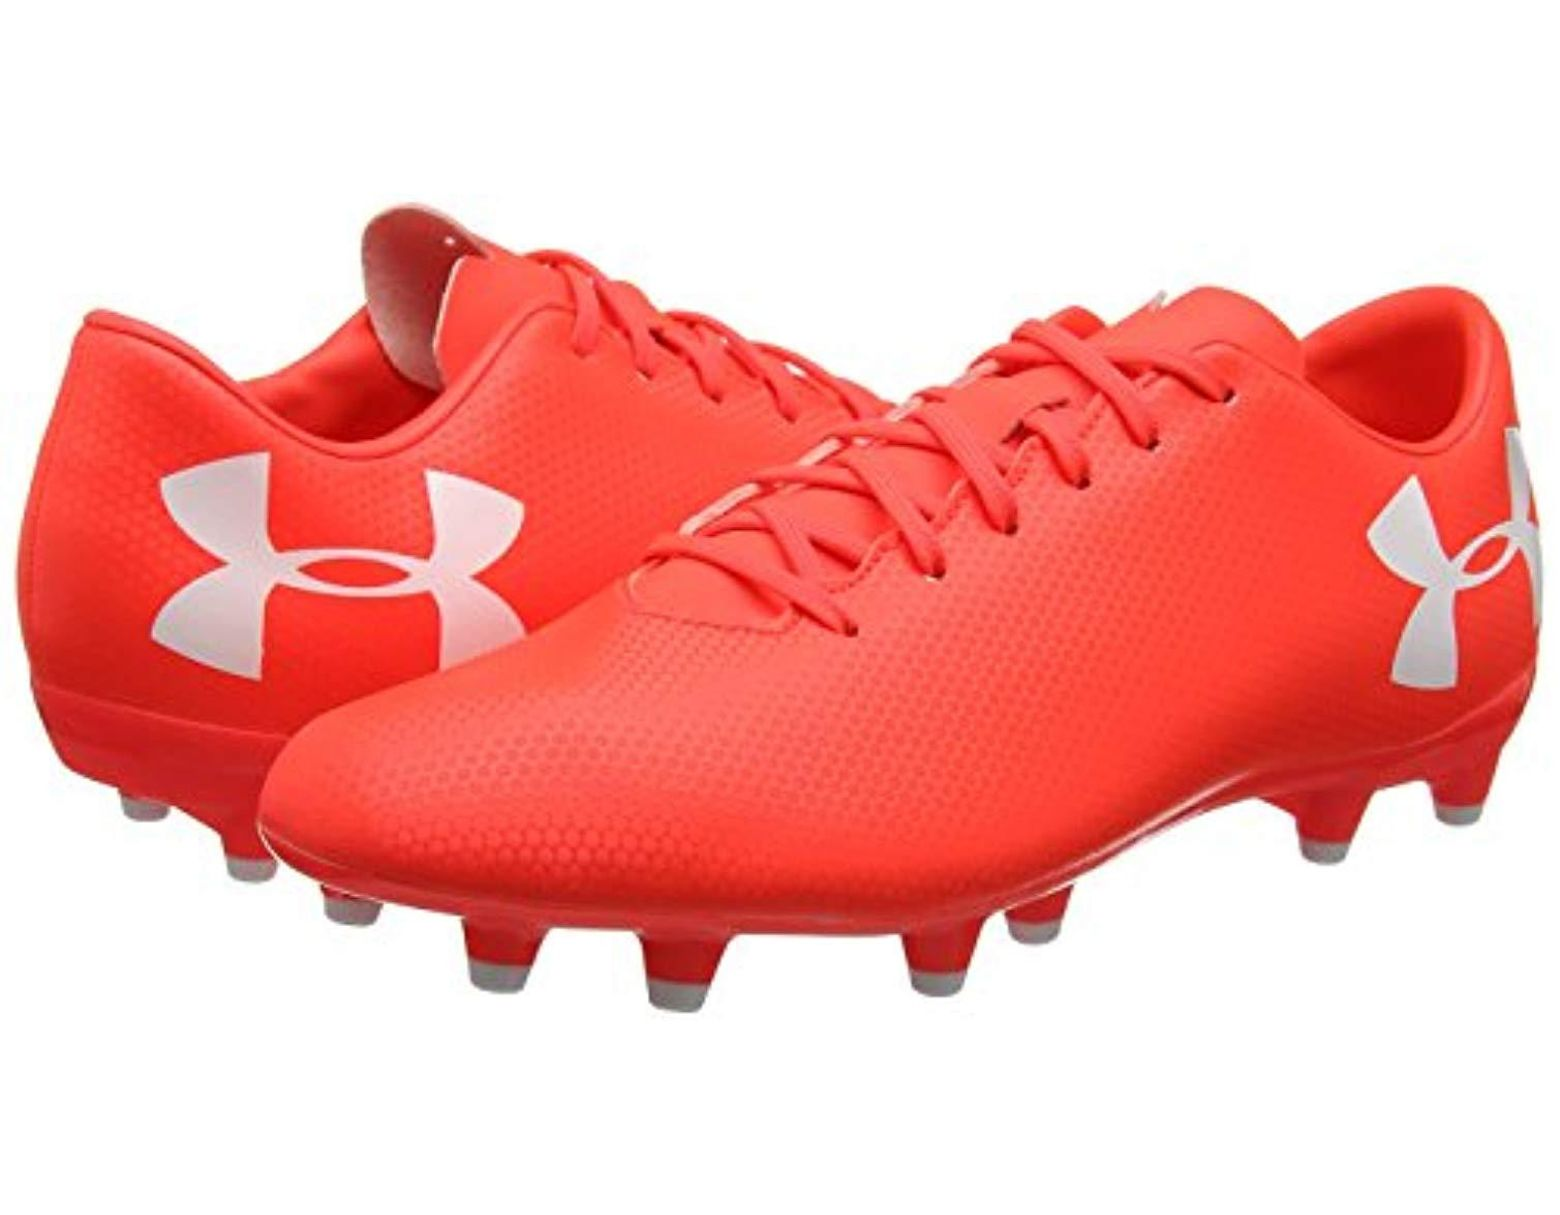 822dd75e Under Armour Ua Force 3.0 Fg Football Boots in Red for Men - Lyst